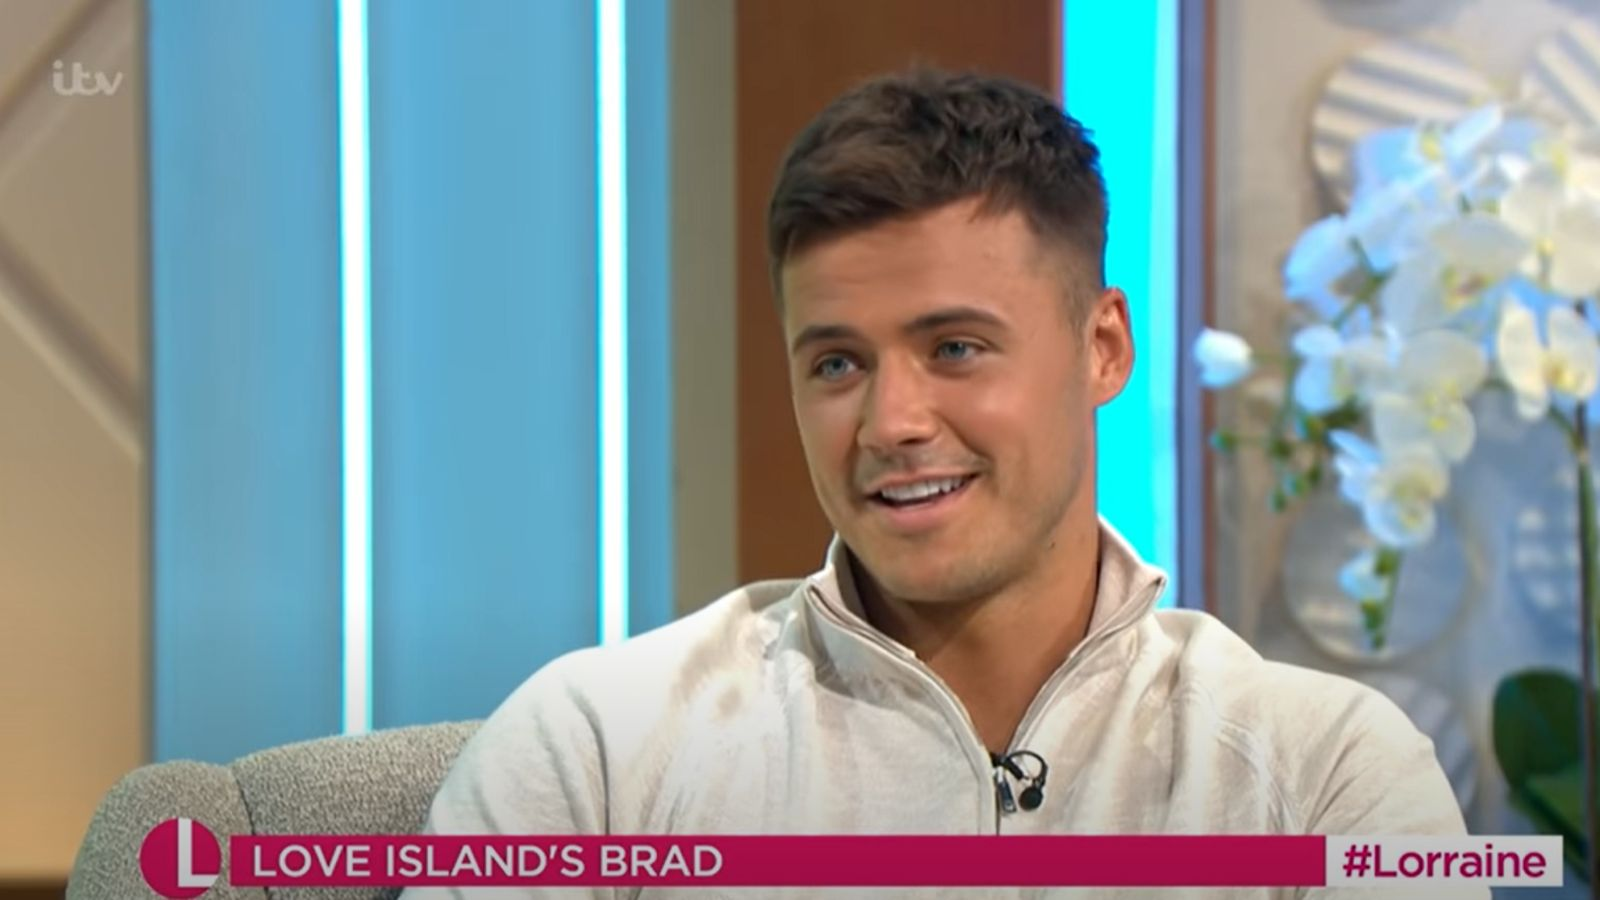 Love Island's Brad finds long-lost sister after present